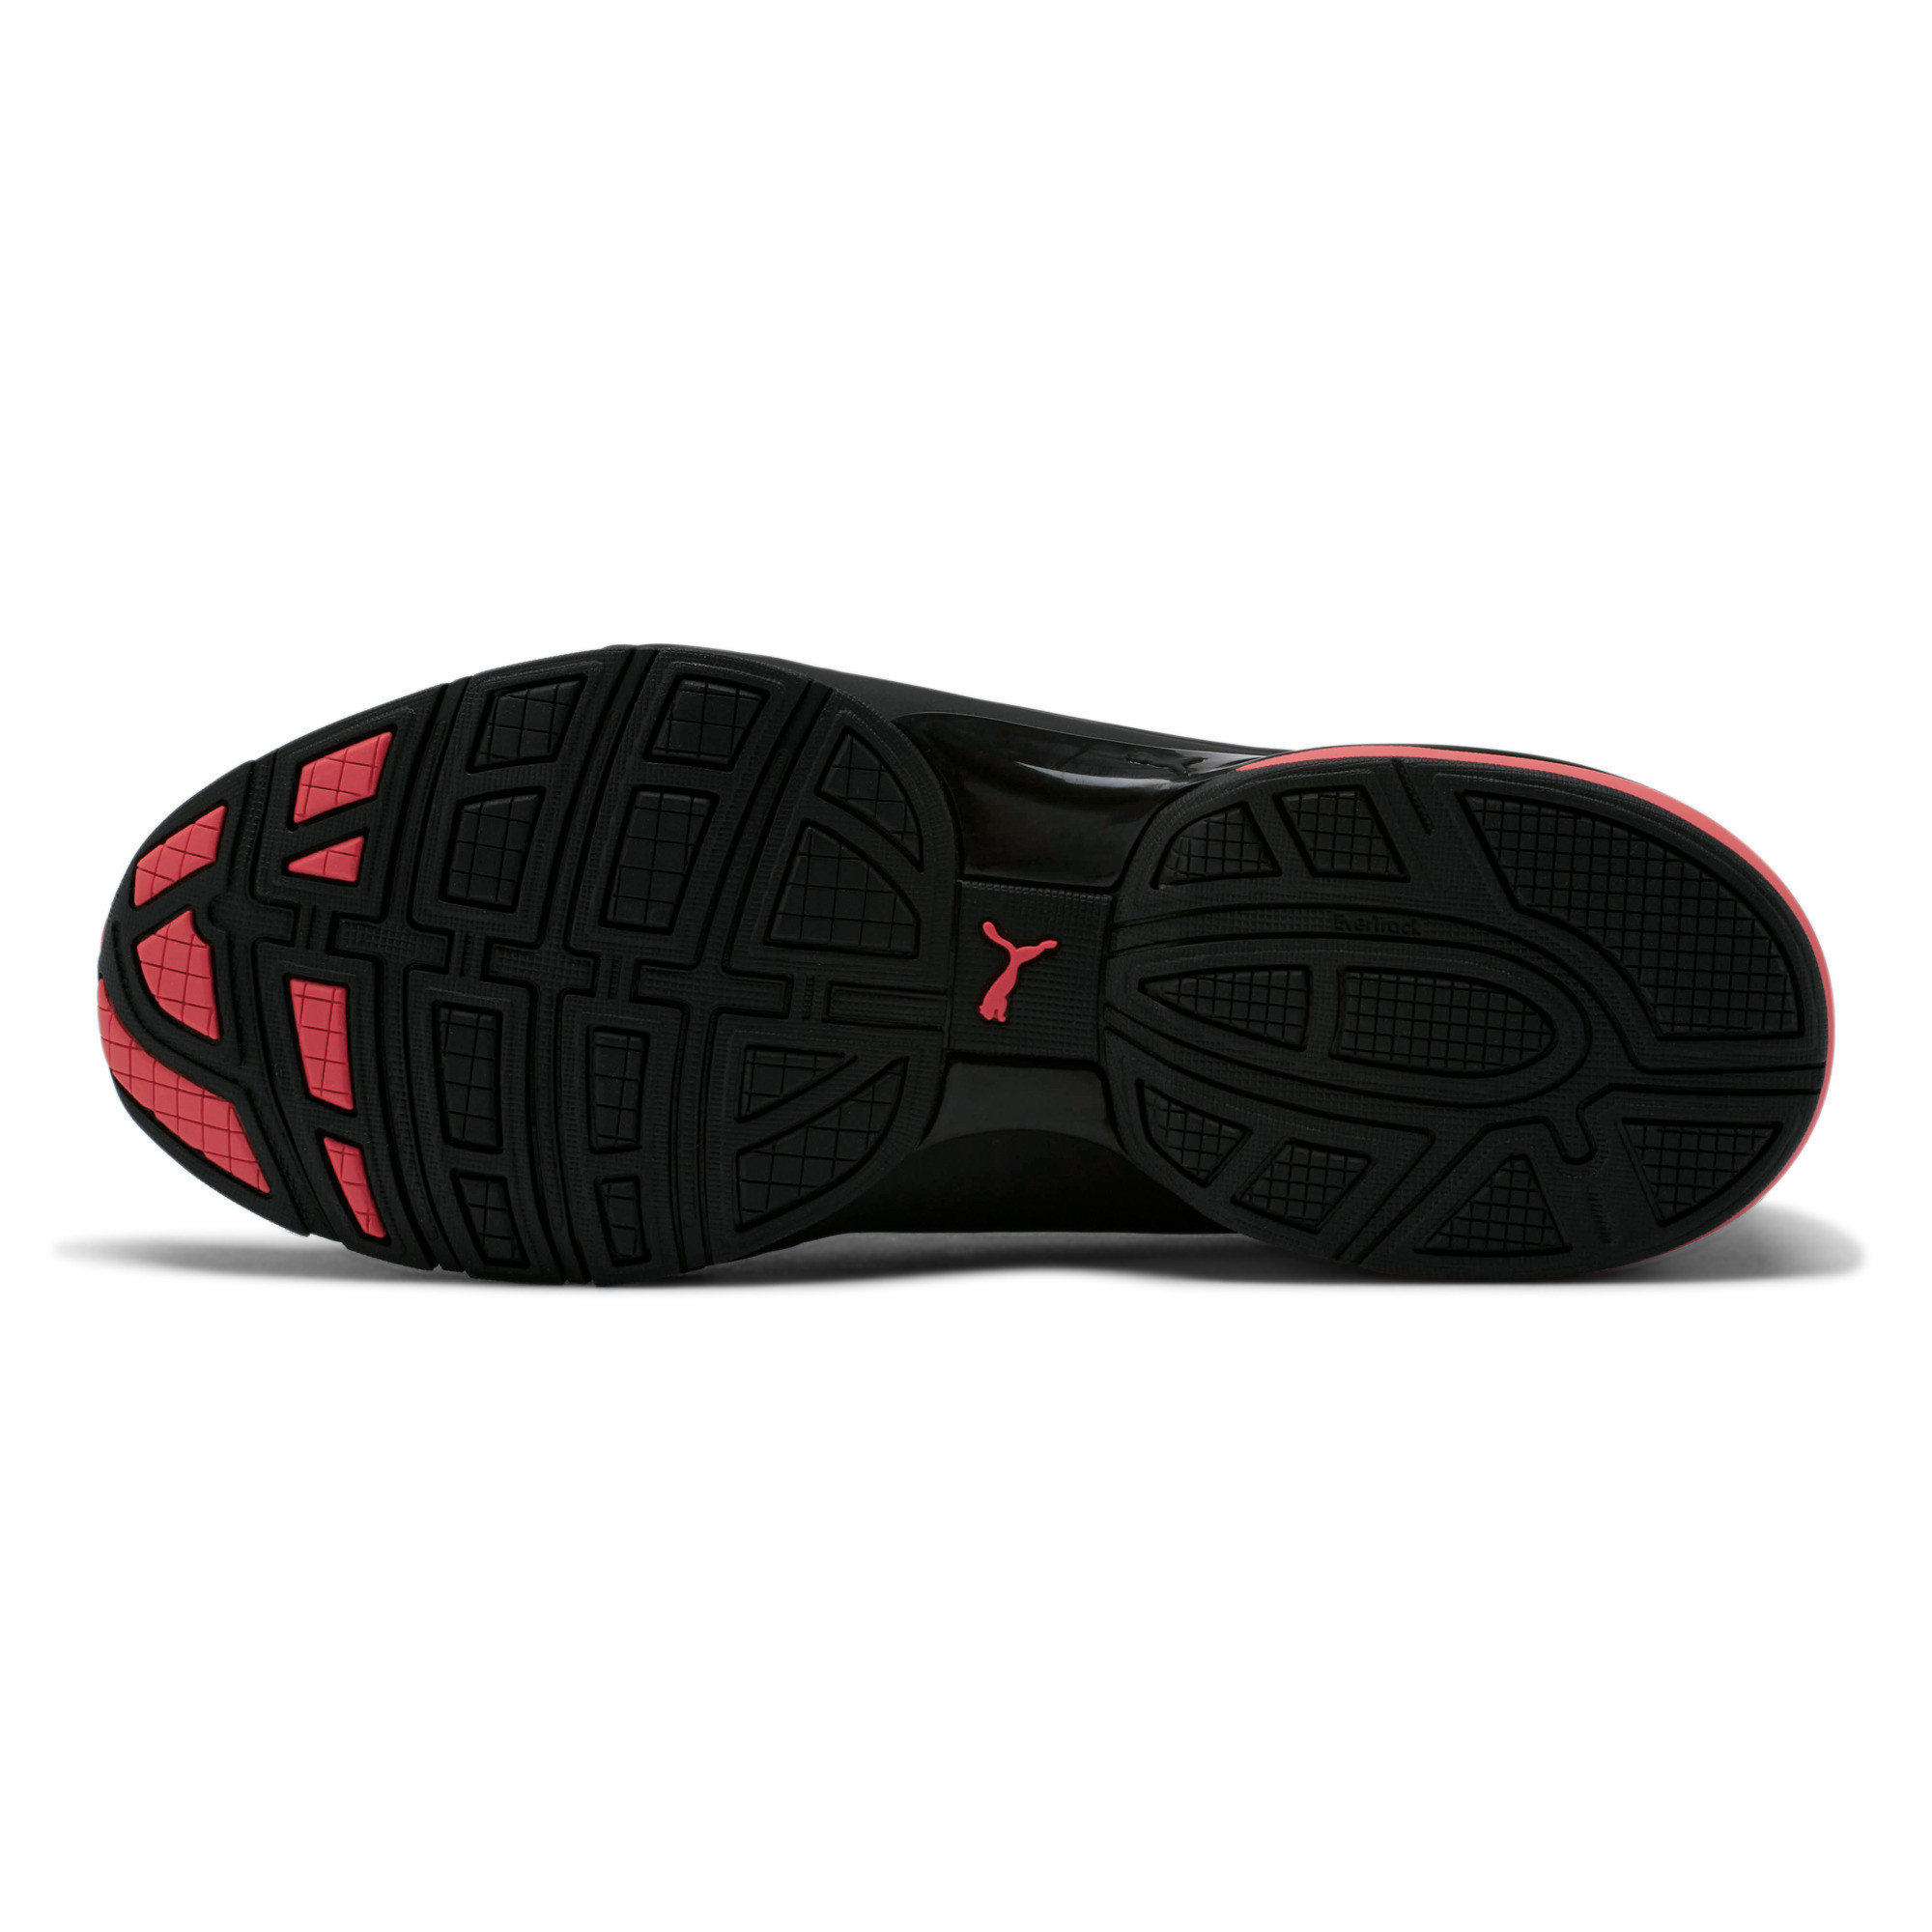 PUMA-Men-039-s-Viz-Runner-Training-Shoes thumbnail 5